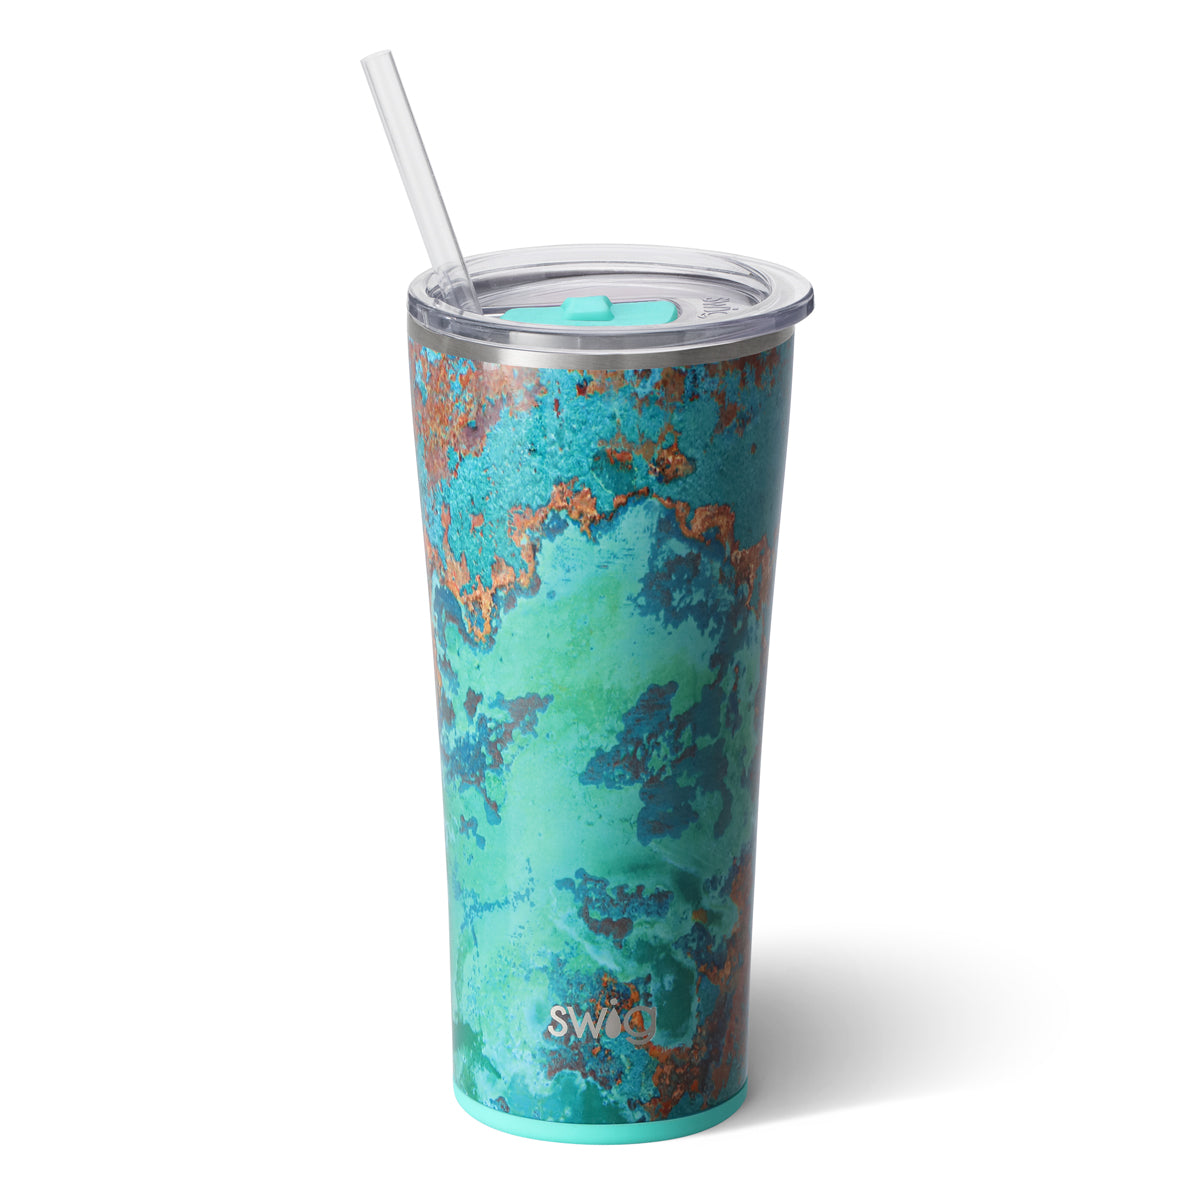 Swig 22 oz. Tumbler, Copper Patina